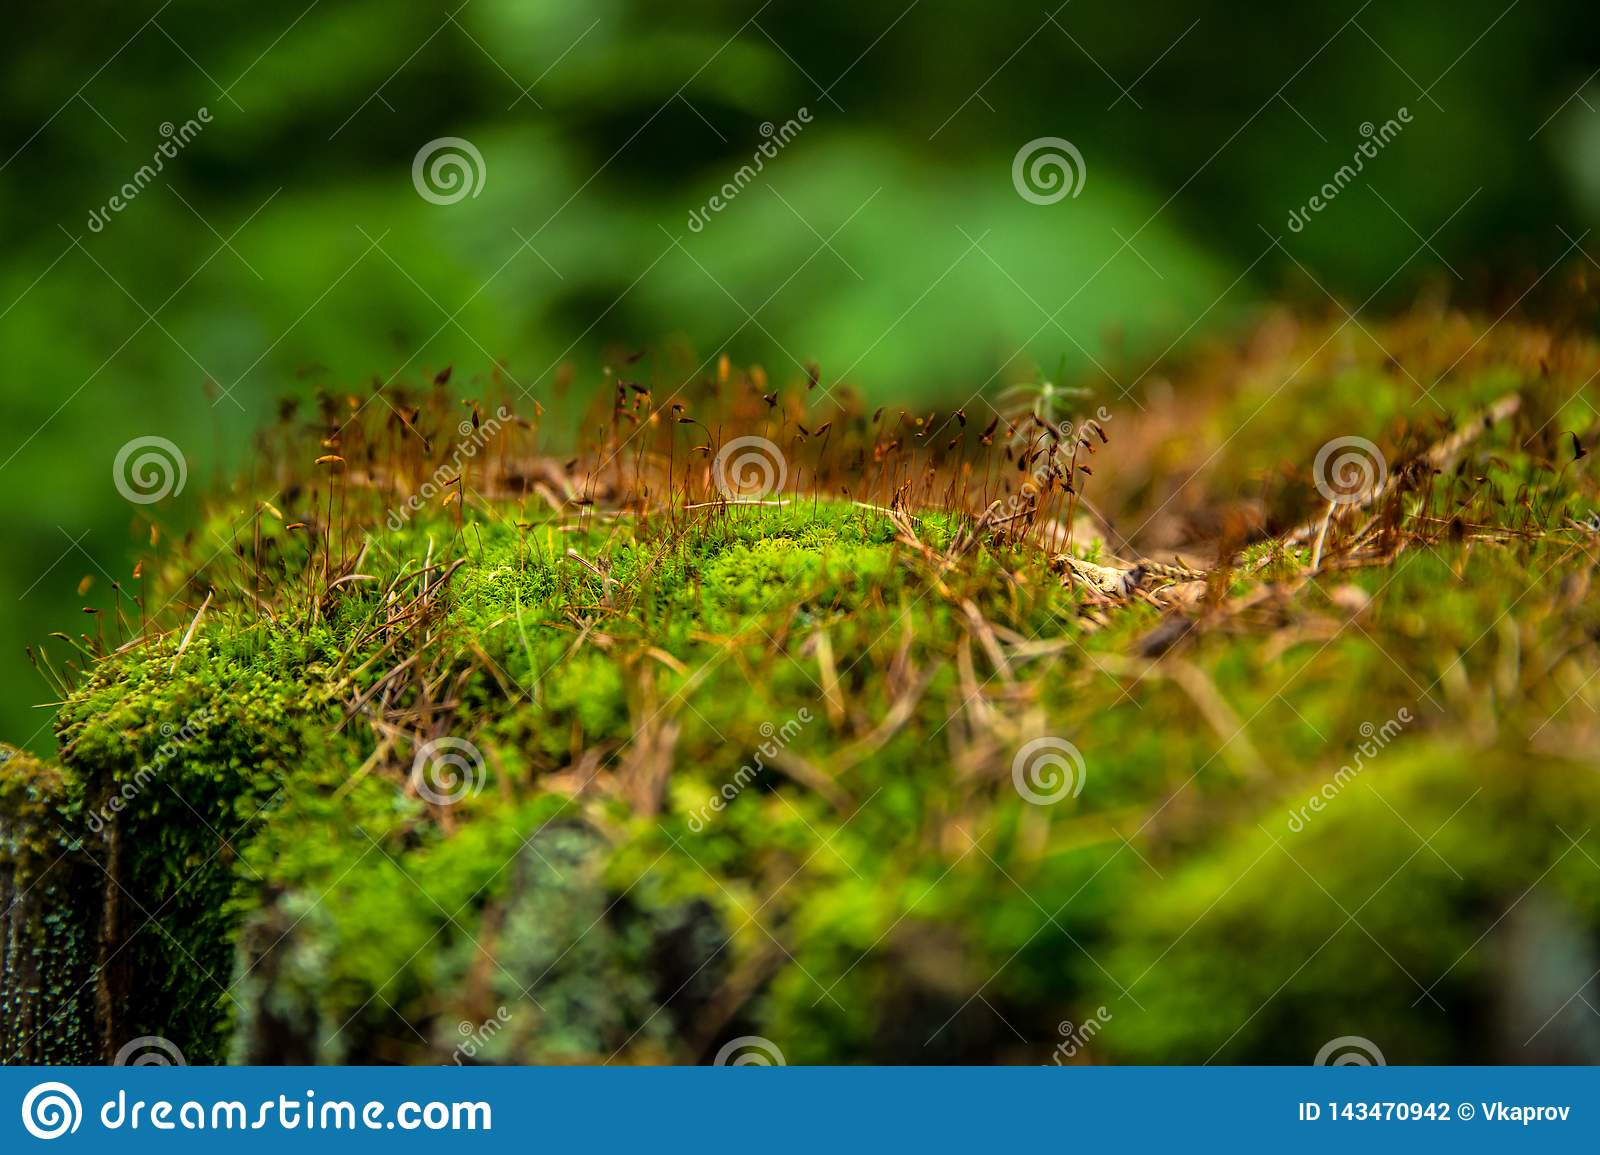 Green moss and yellow grass on a tree in the forest